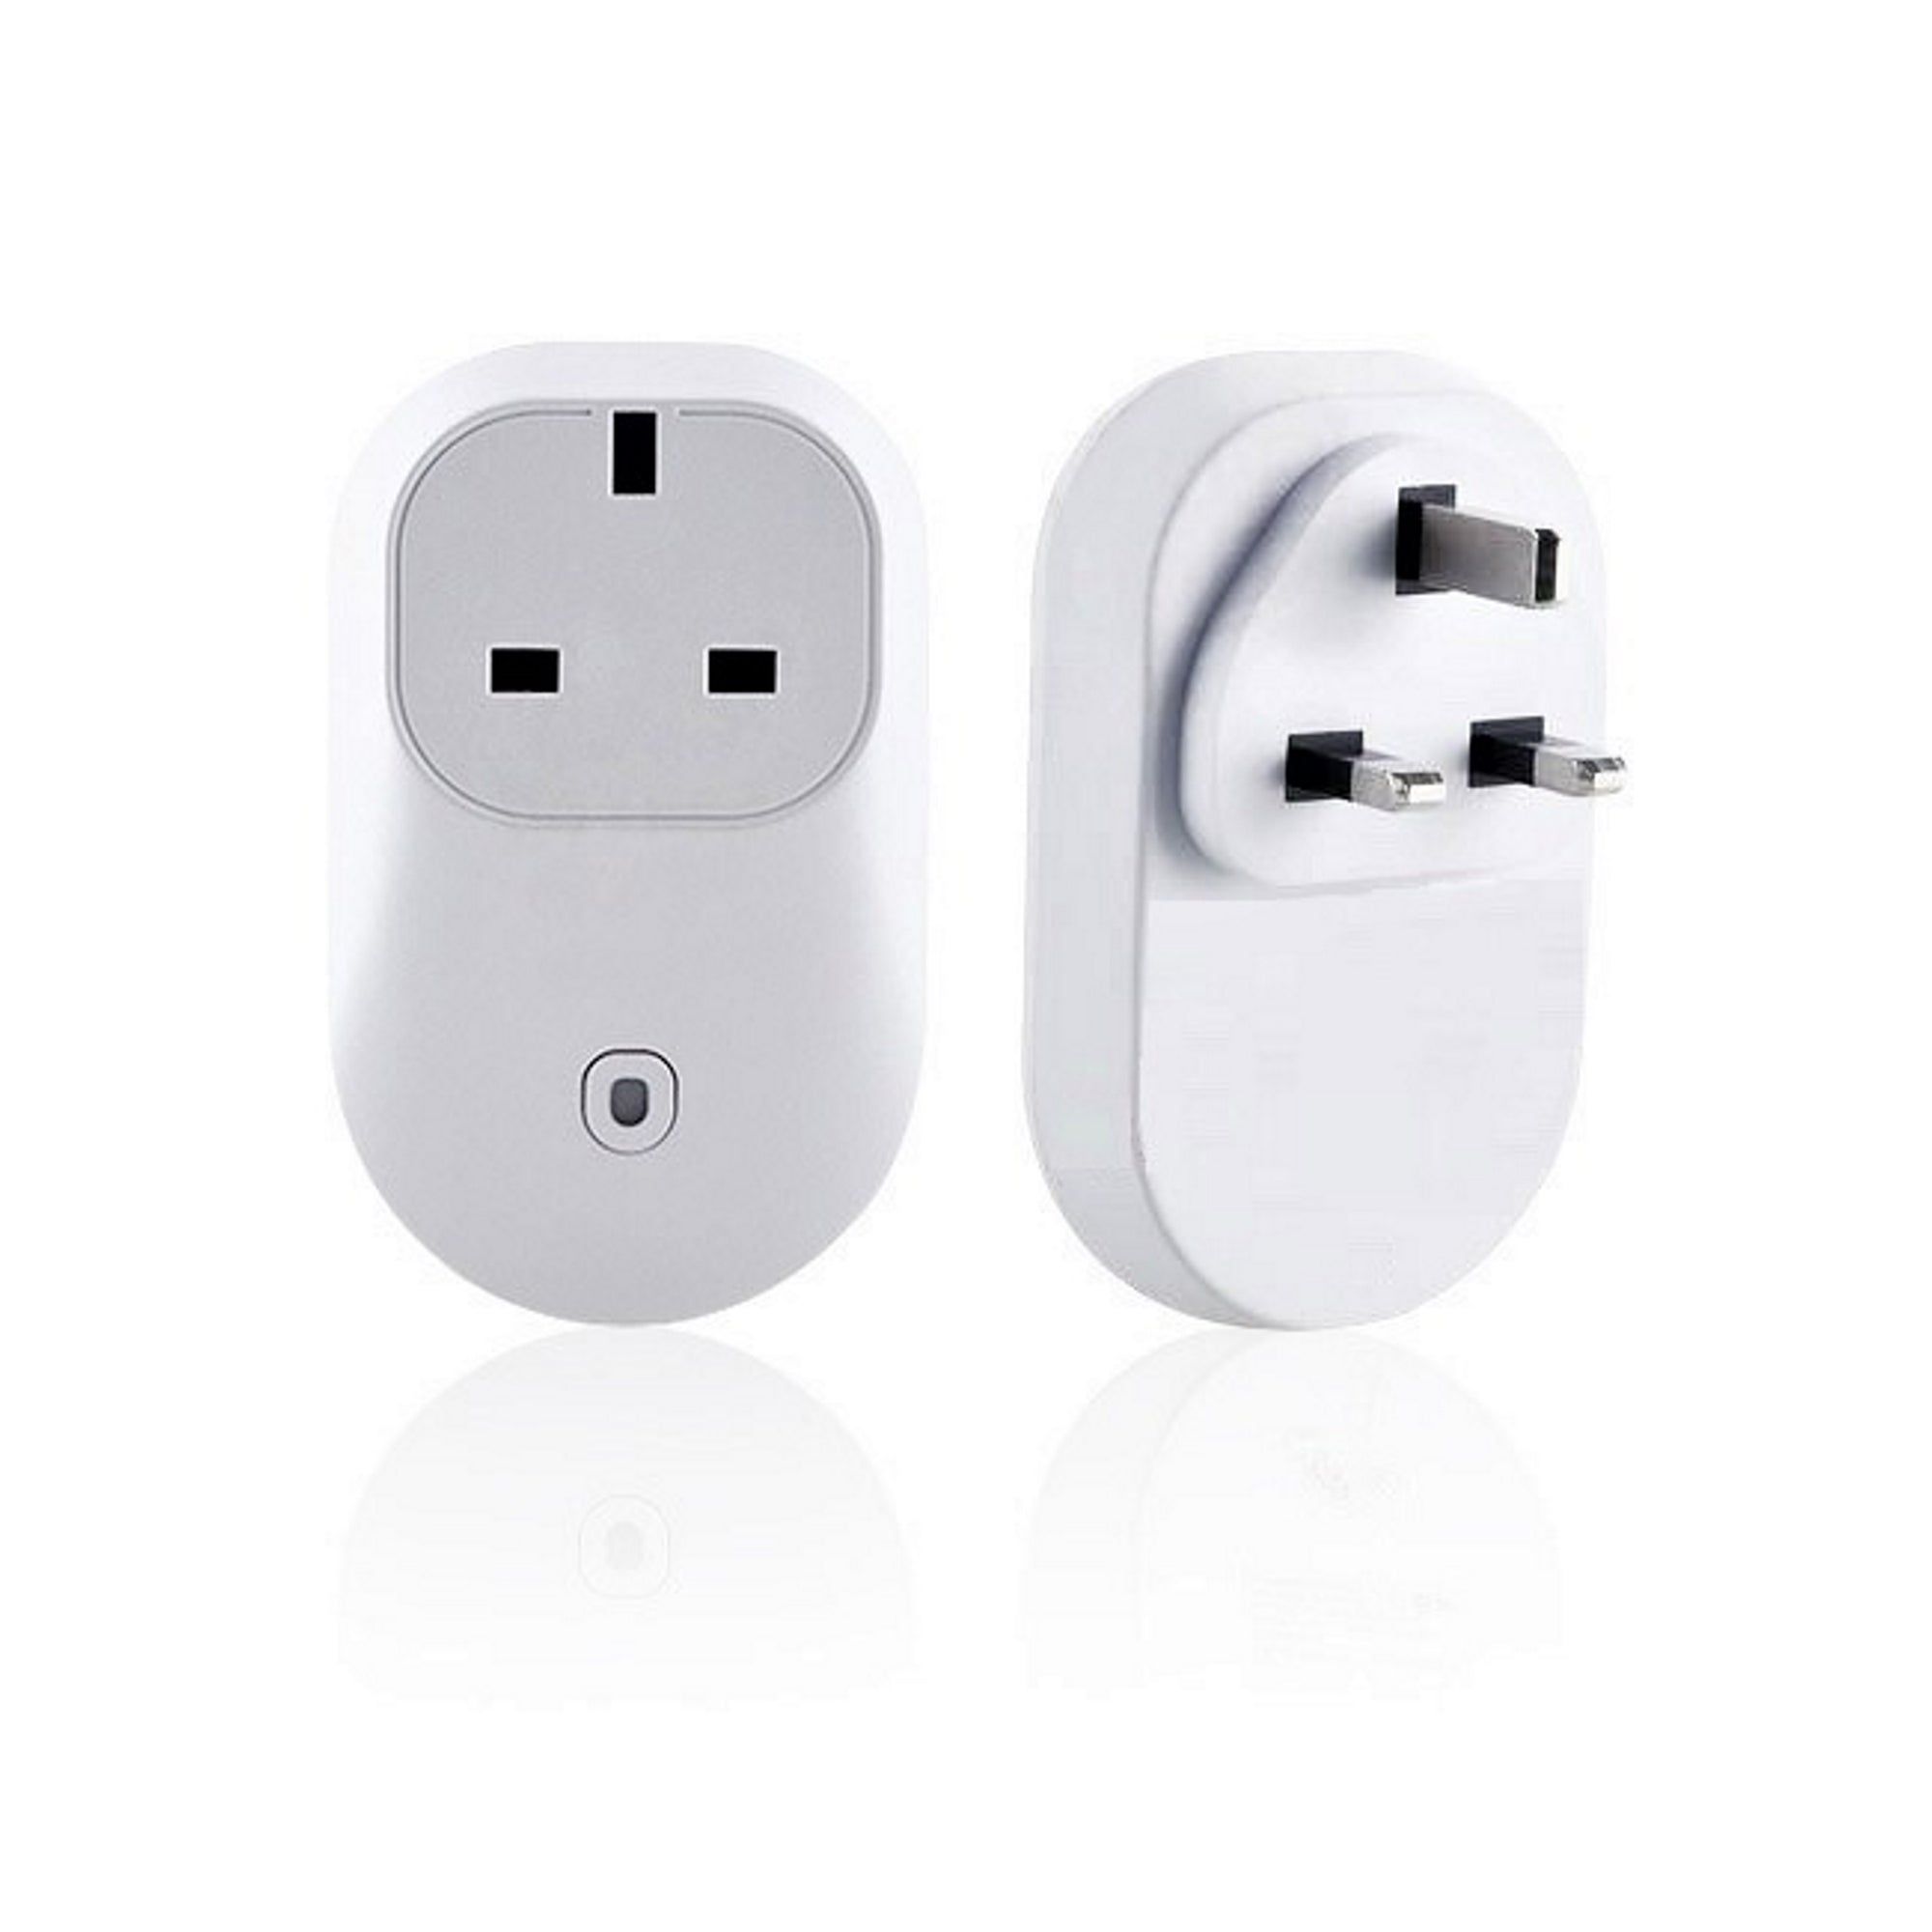 UK 13A 3-Pin RF Plug with RF 433MHz Wireless Remote